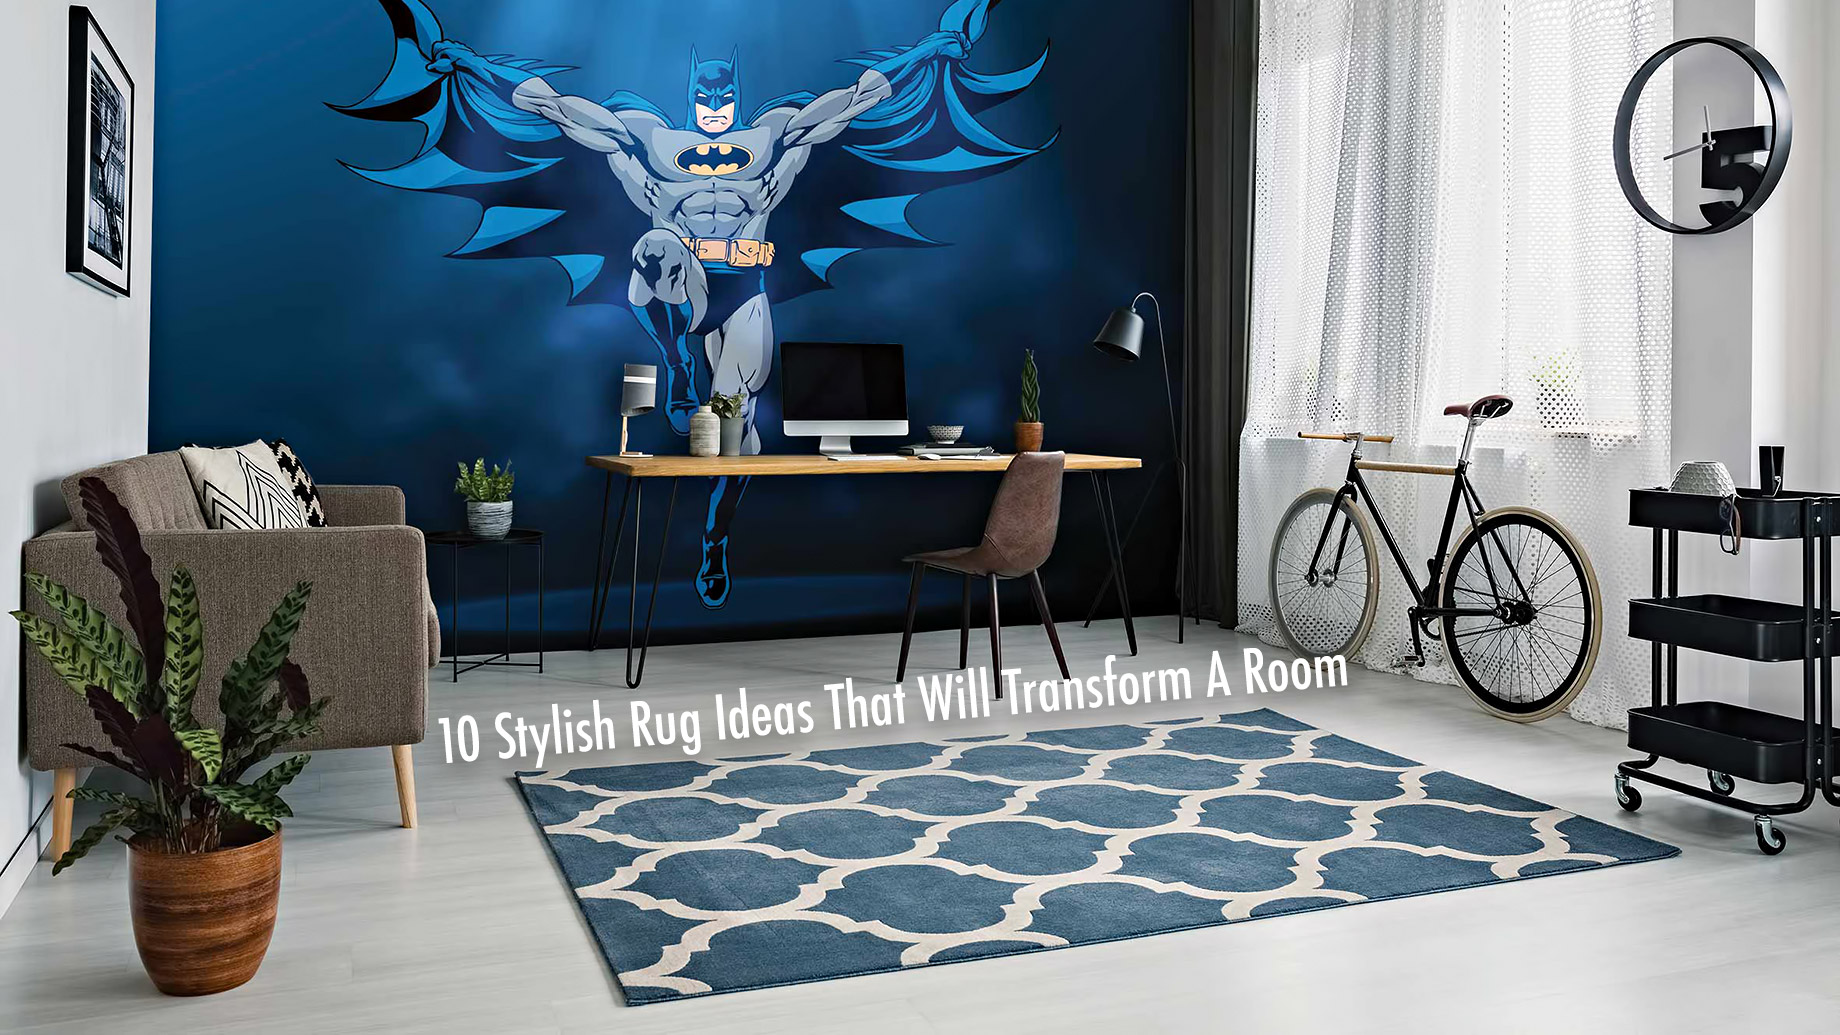 Interior Design and Décor - 10 Stylish Rug Ideas That Will Transform A Room